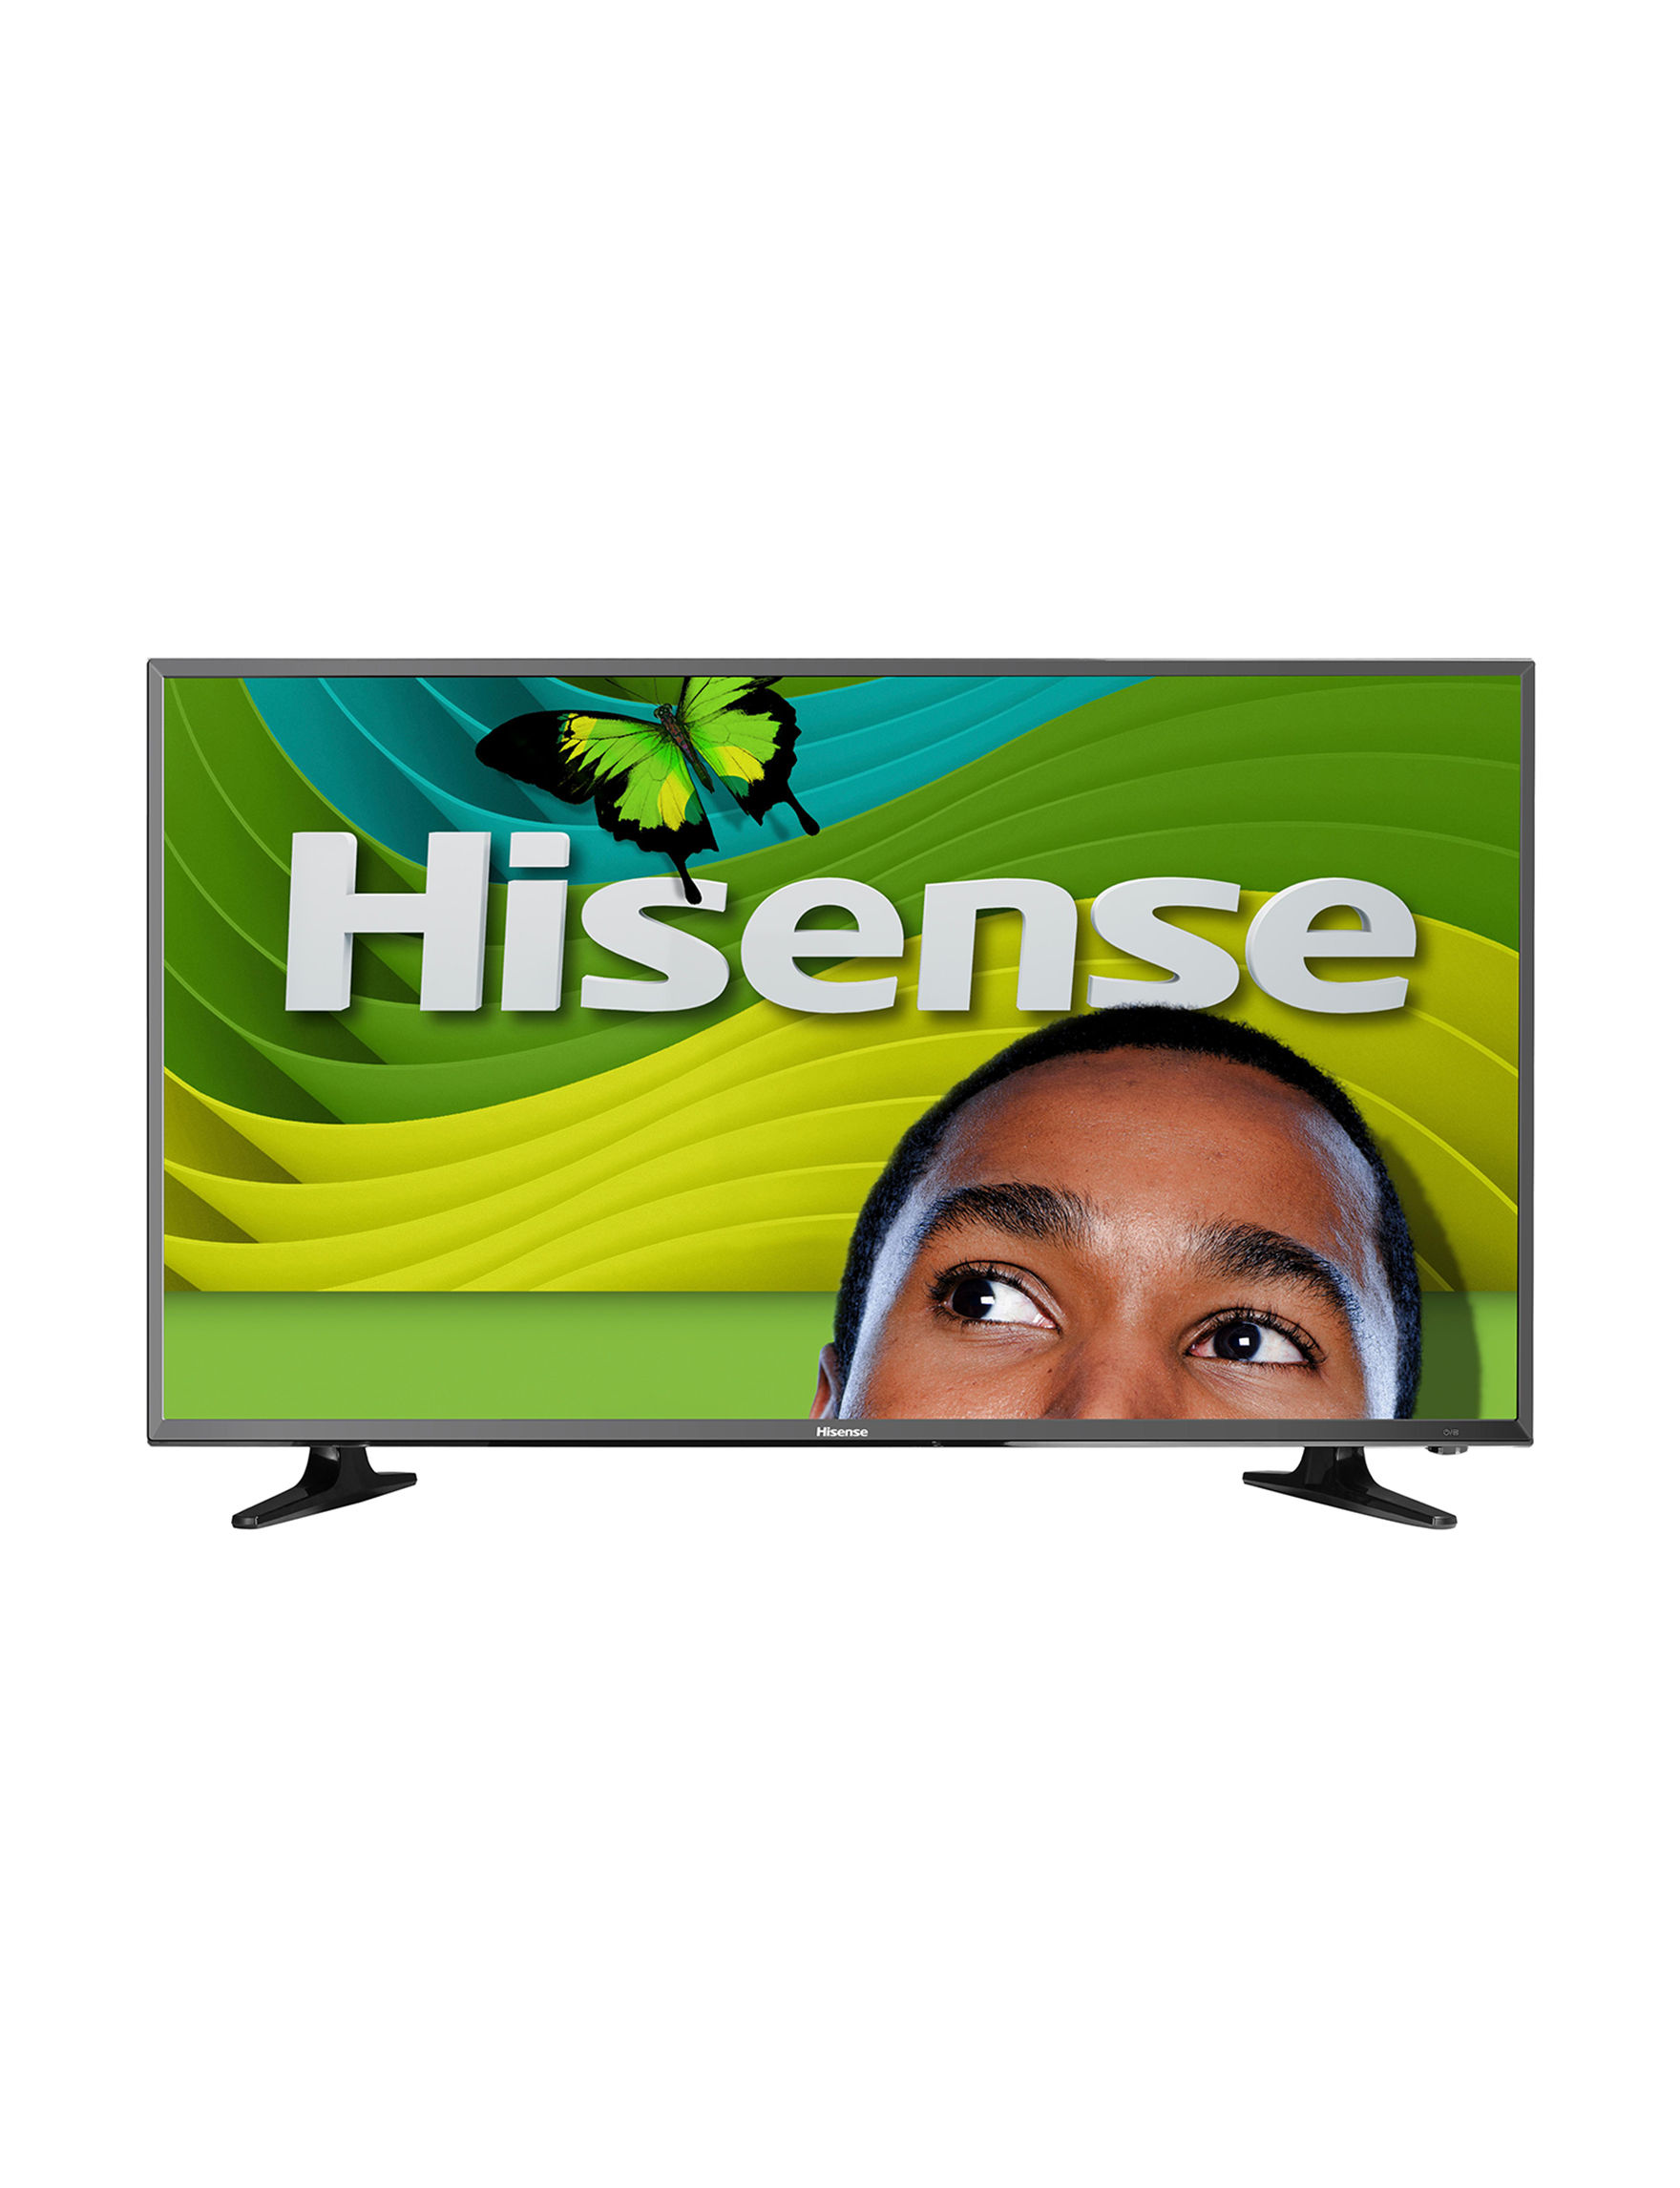 Hisense Black Home Theater Systems Televisions TV & Home Theater